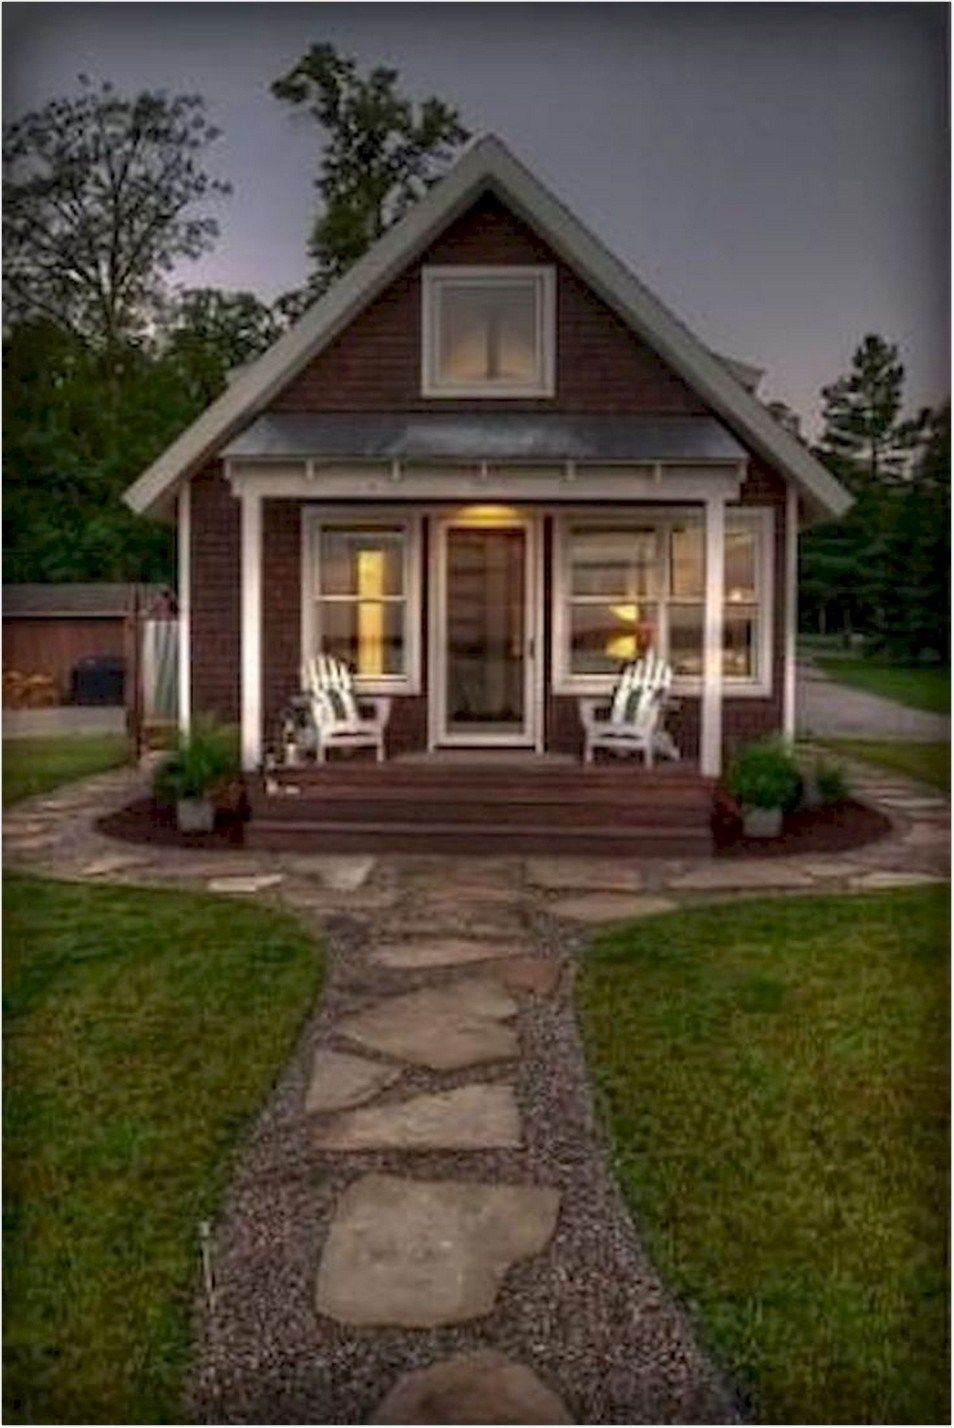 61 Tiny House Design In A Small Hut To Inspire The Design Of Your Happiness 4 Small Cottage Homes Tiny House Plans Small Cottages Small Cottage House Plans